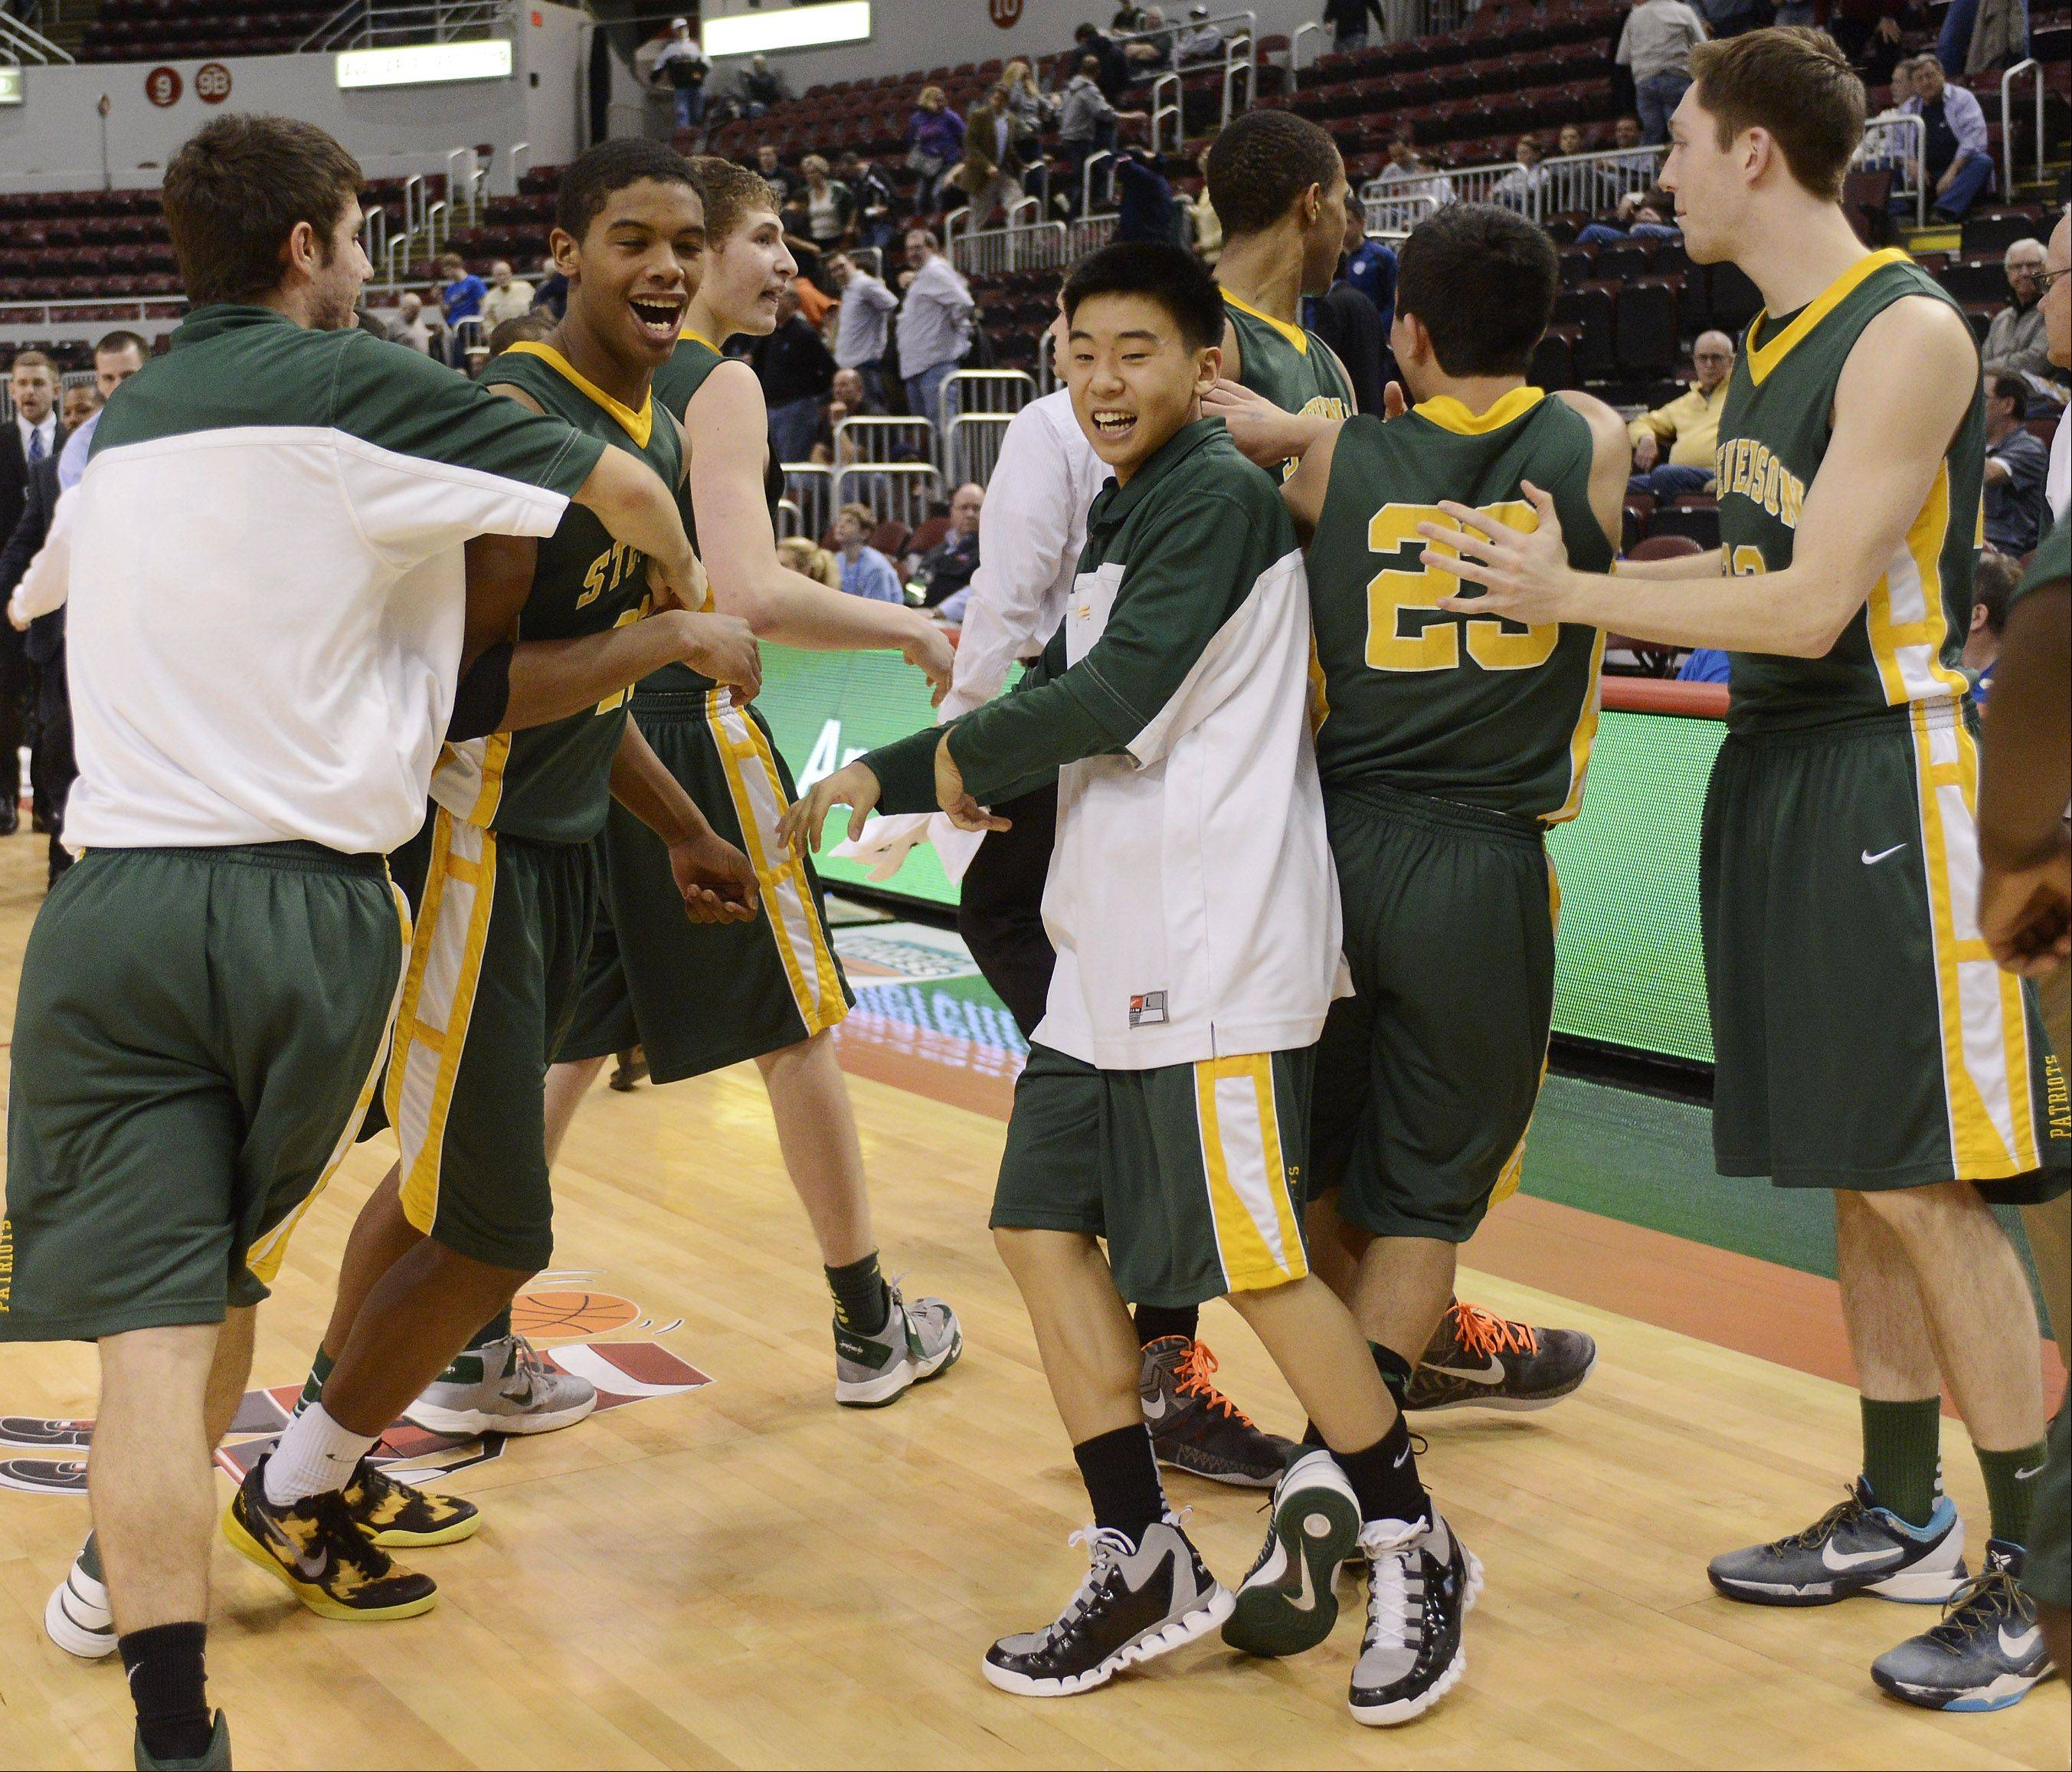 Stevenson celebrates its 60-49 victory over Edwardsville during the Class 4A boys basketball semifinals at Carver Arena in Peoria on Friday.